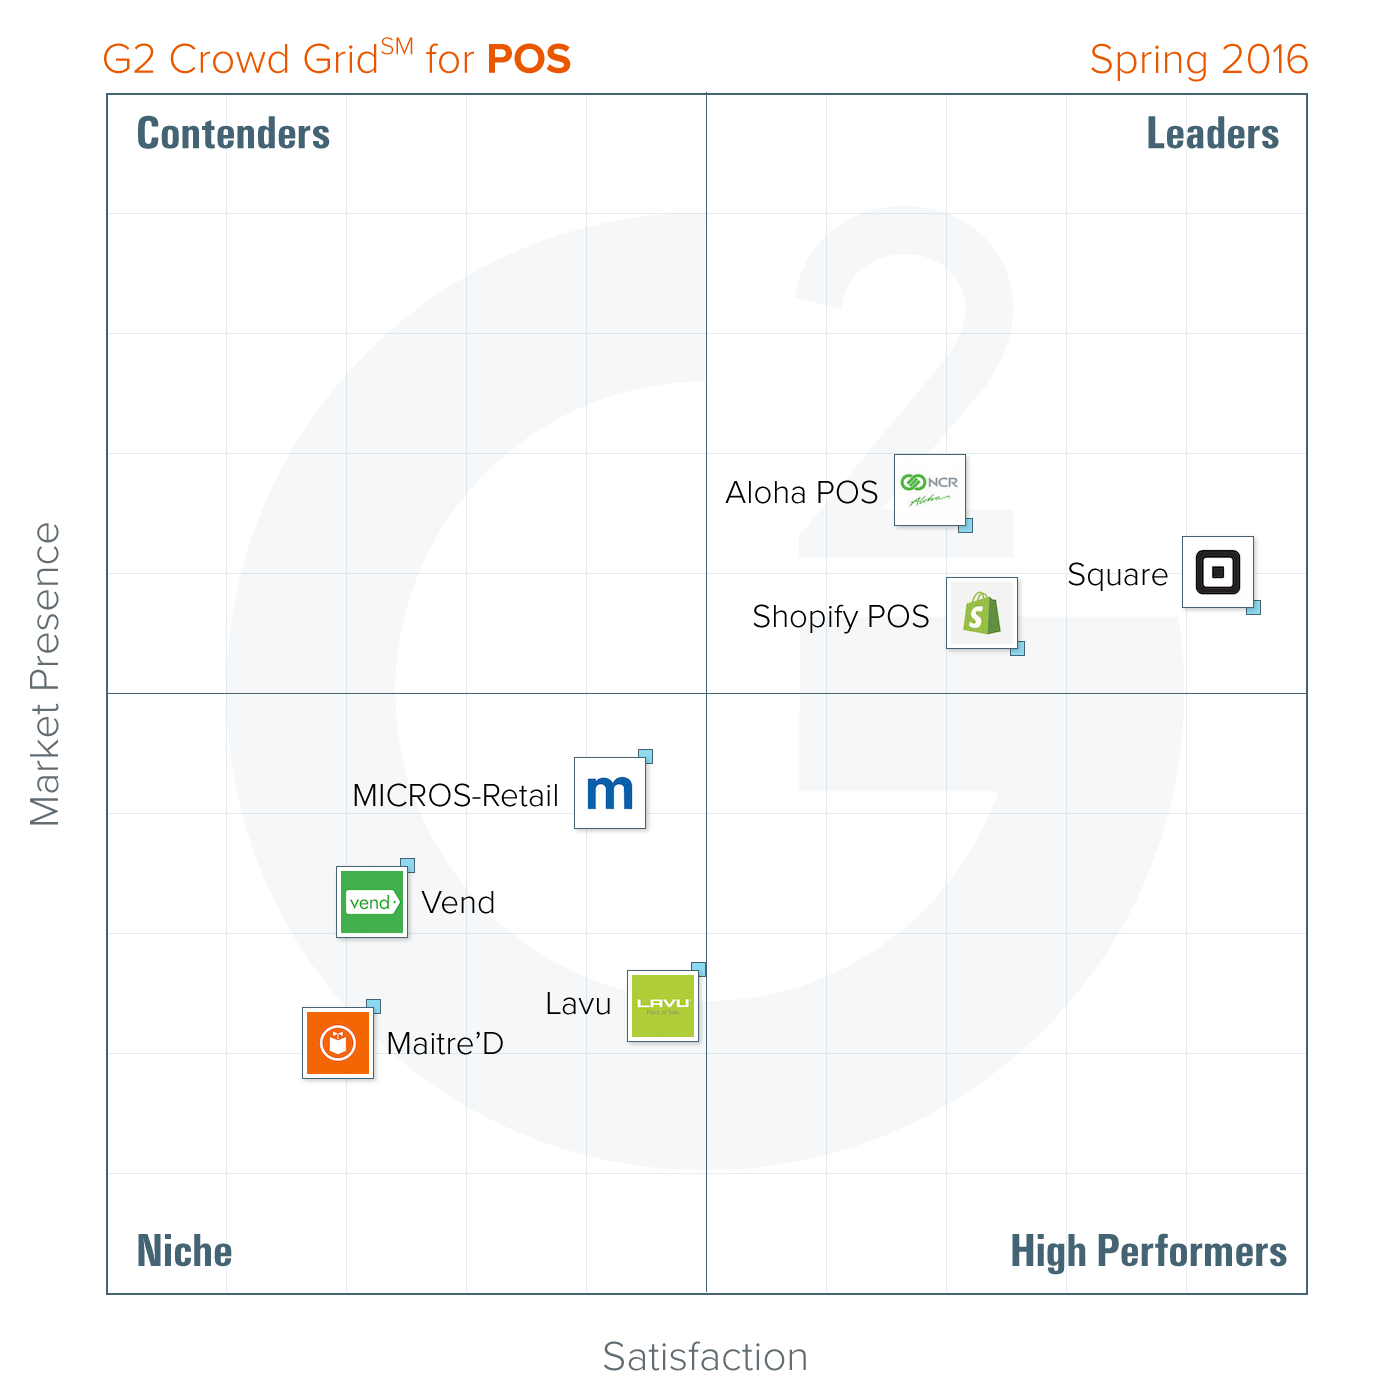 The Best POS Software According to G2 Crowd Spring 2016 Rankings